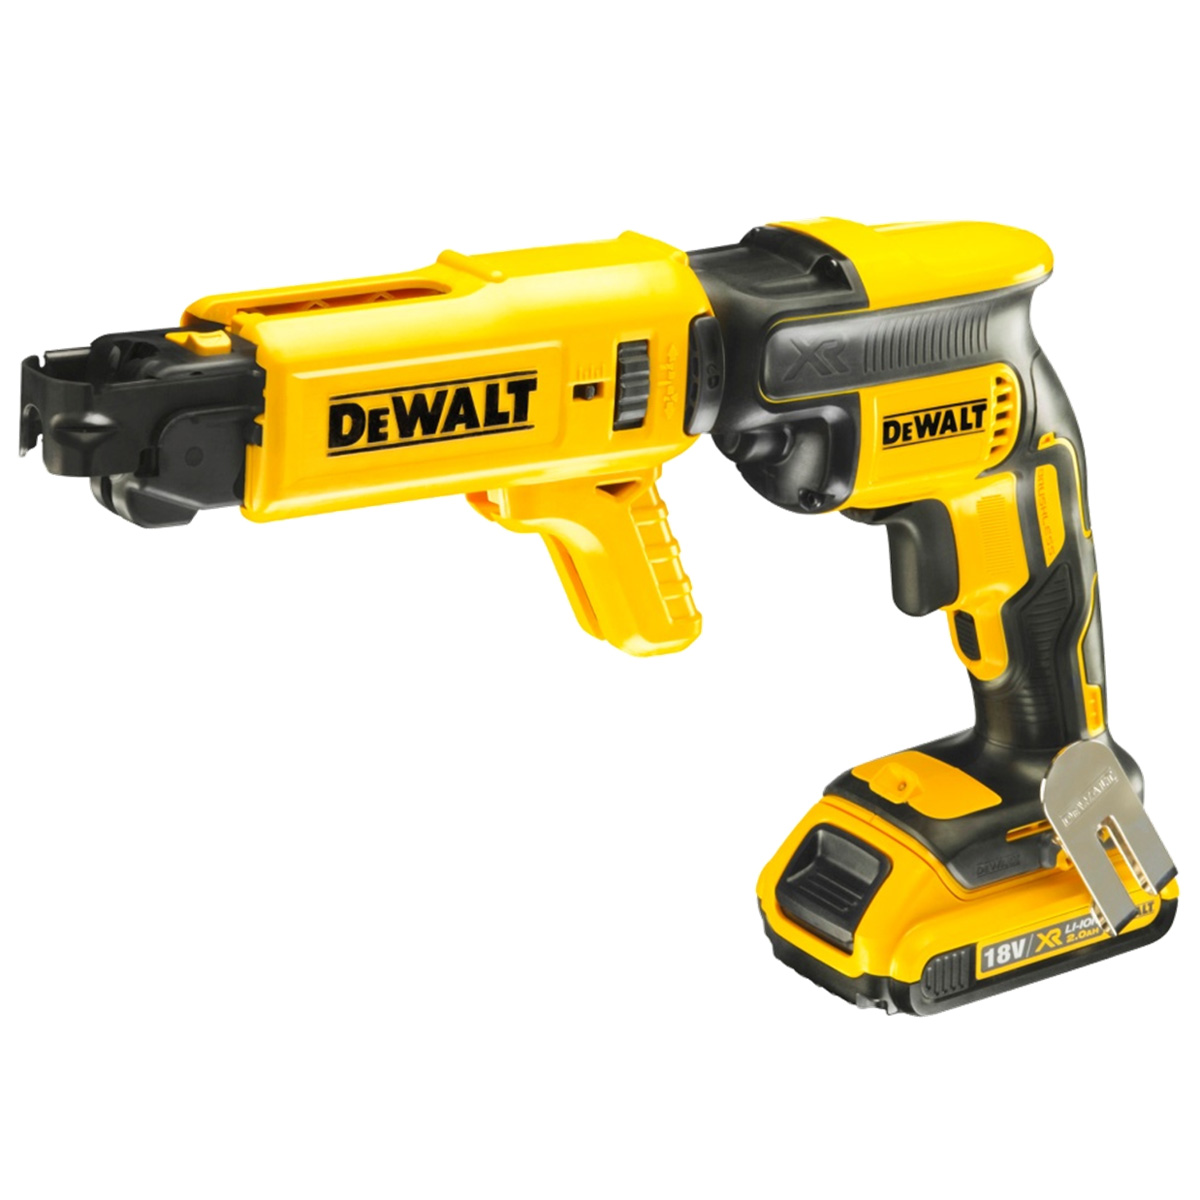 DEWALT DCF620D2K 18V DRYWALL GUN WITH 2X 2.0AH LI-ION BATTERIES